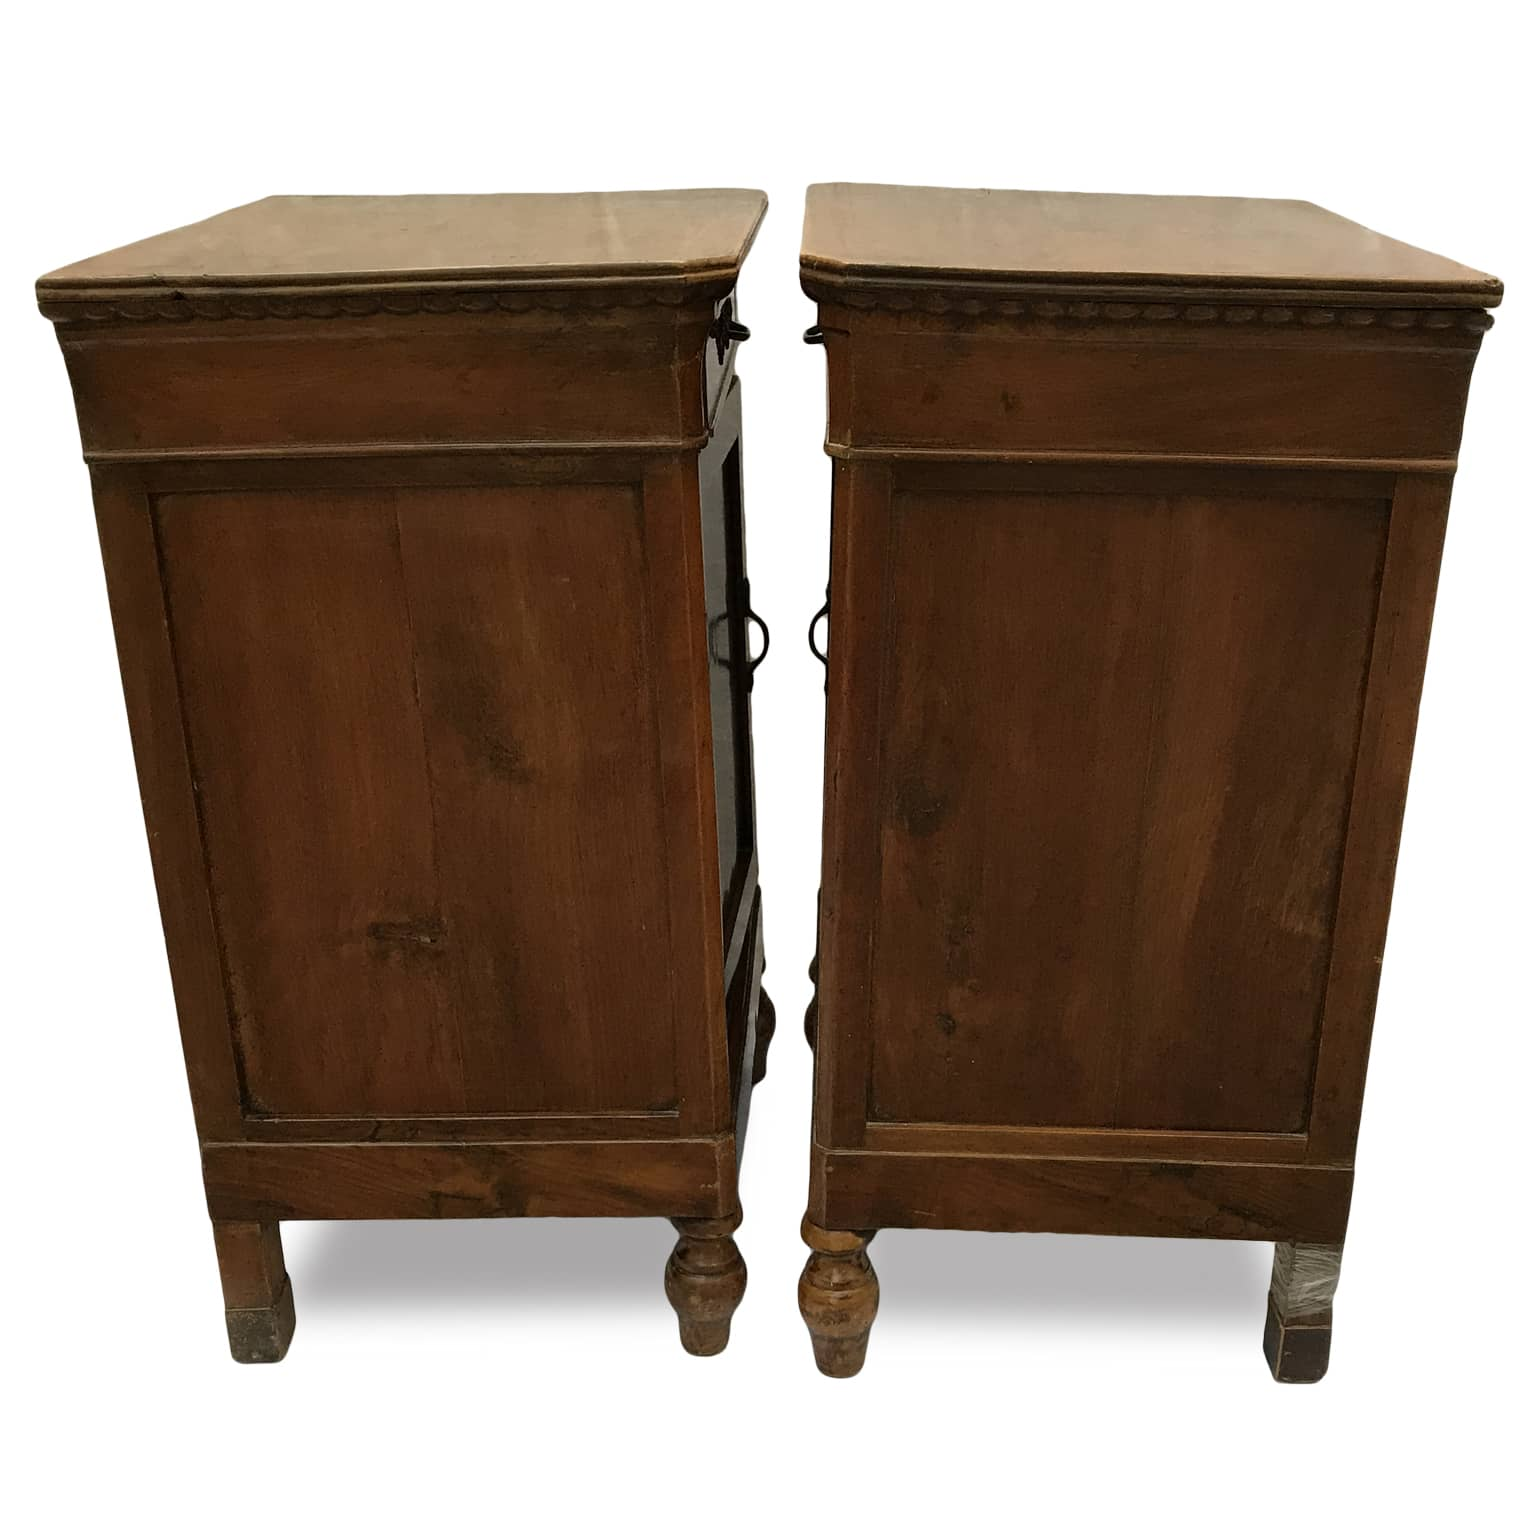 Antique Bedside Tables Pair Of Antique Italian Walnut Bedside Tables